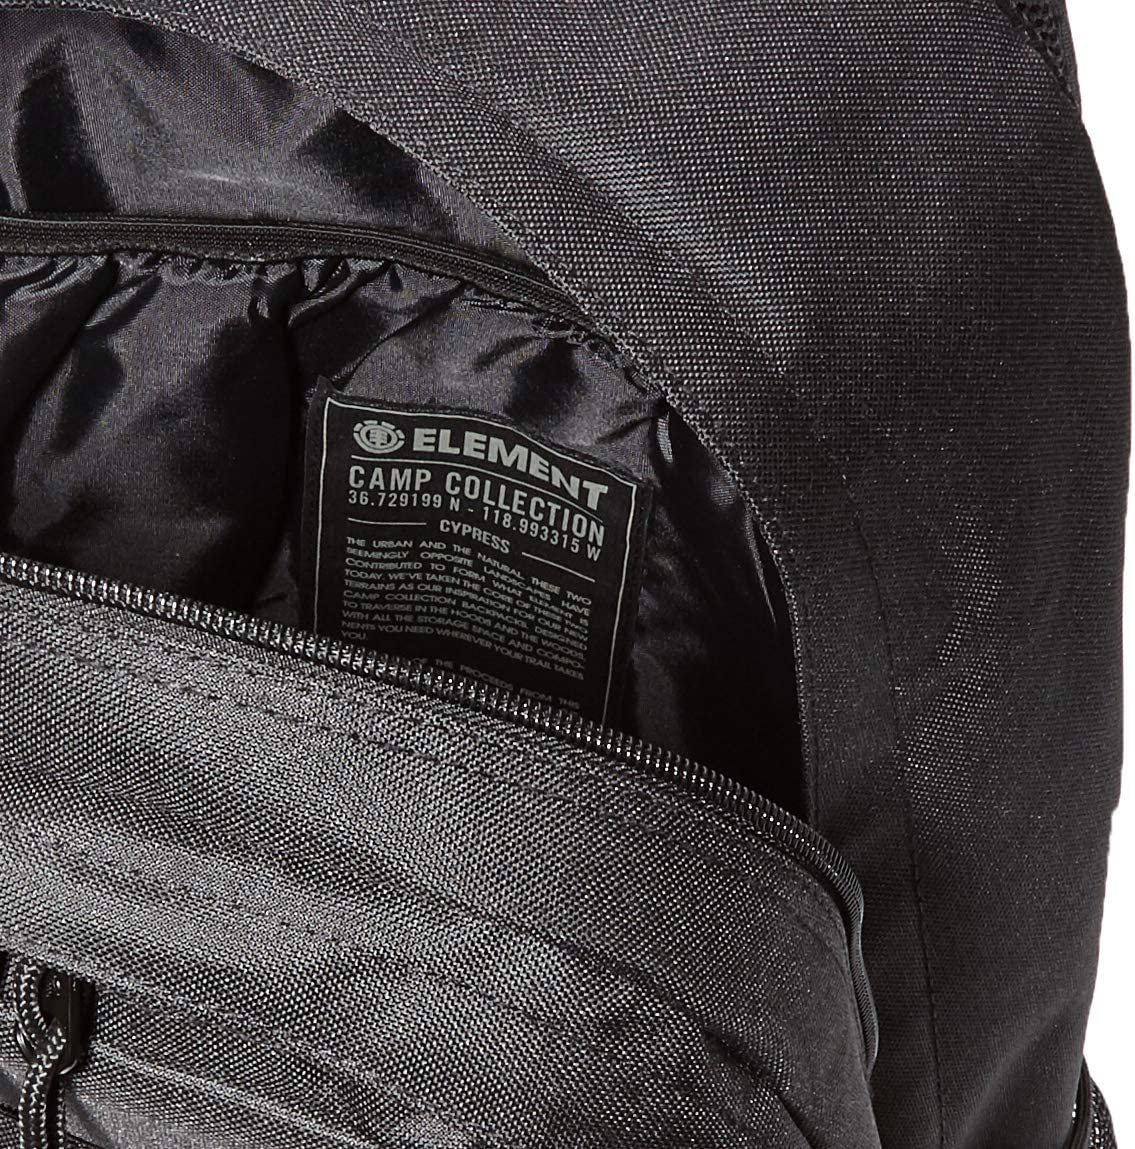 Element Leisure Backpack Cypress 15 Saison 2018//19 Camp Collection Polyester